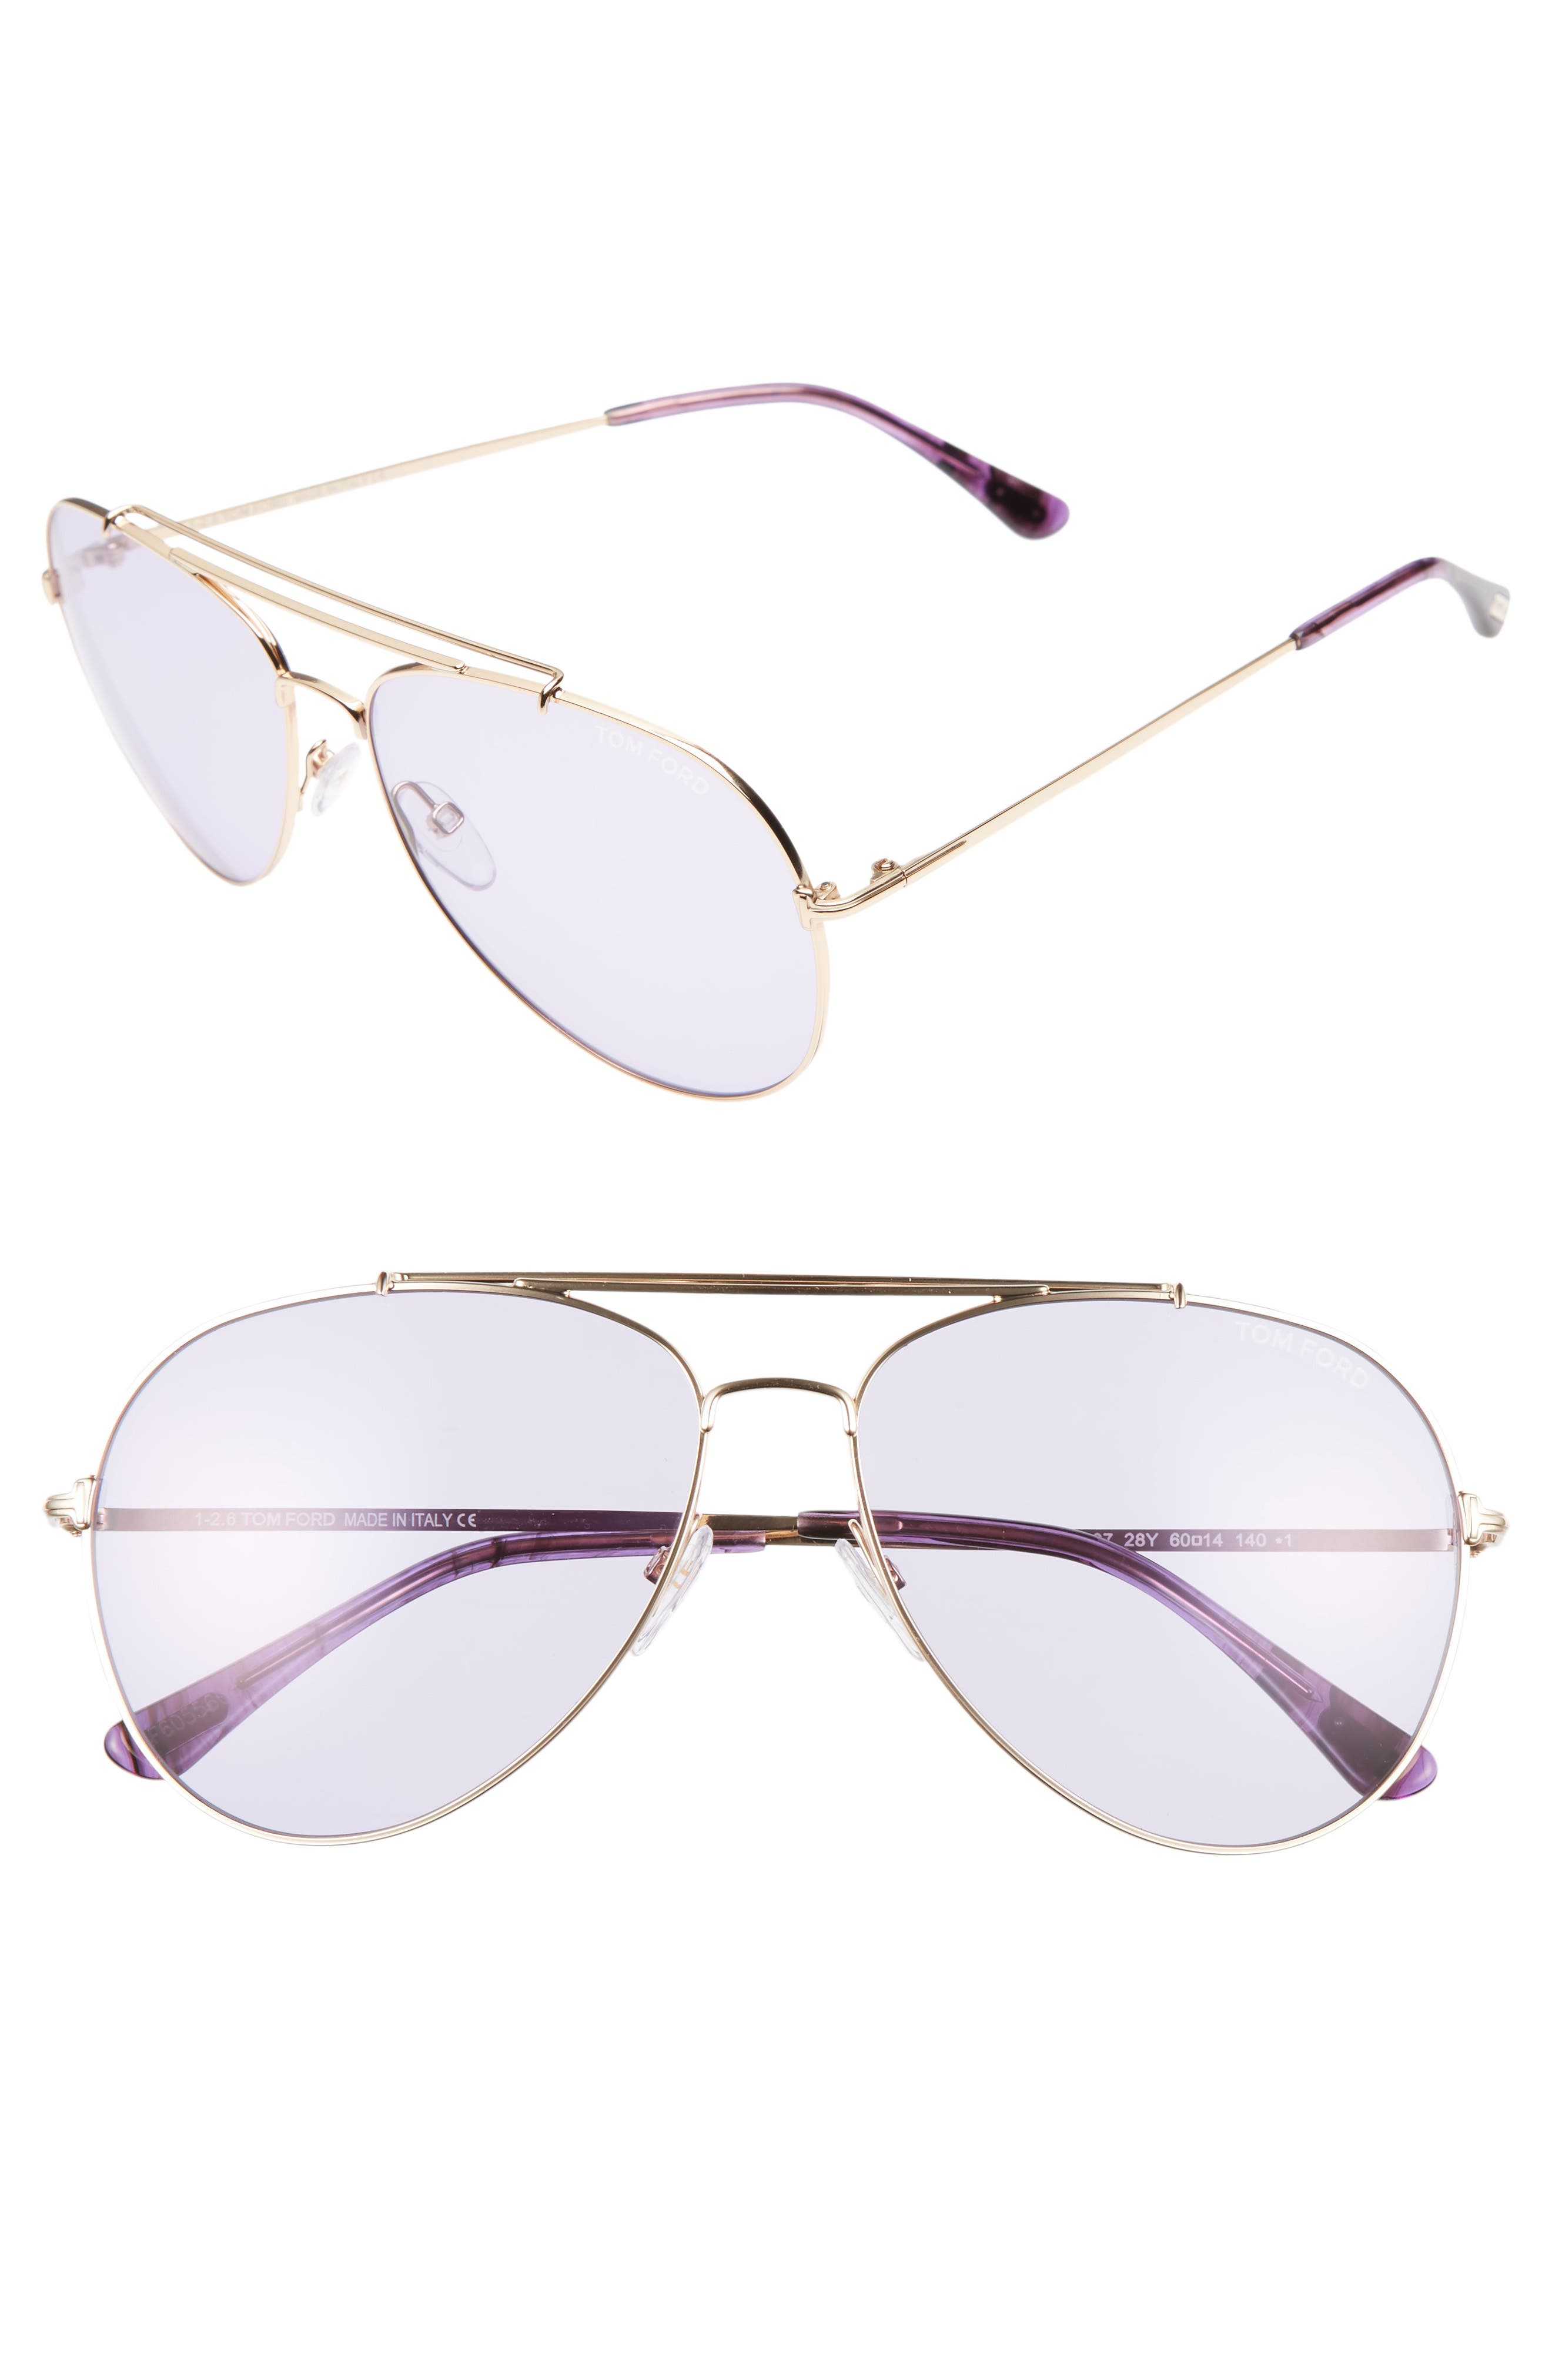 Alternate Image 1 Selected - Tom Ford Indiana 60mm Aviator Sunglasses